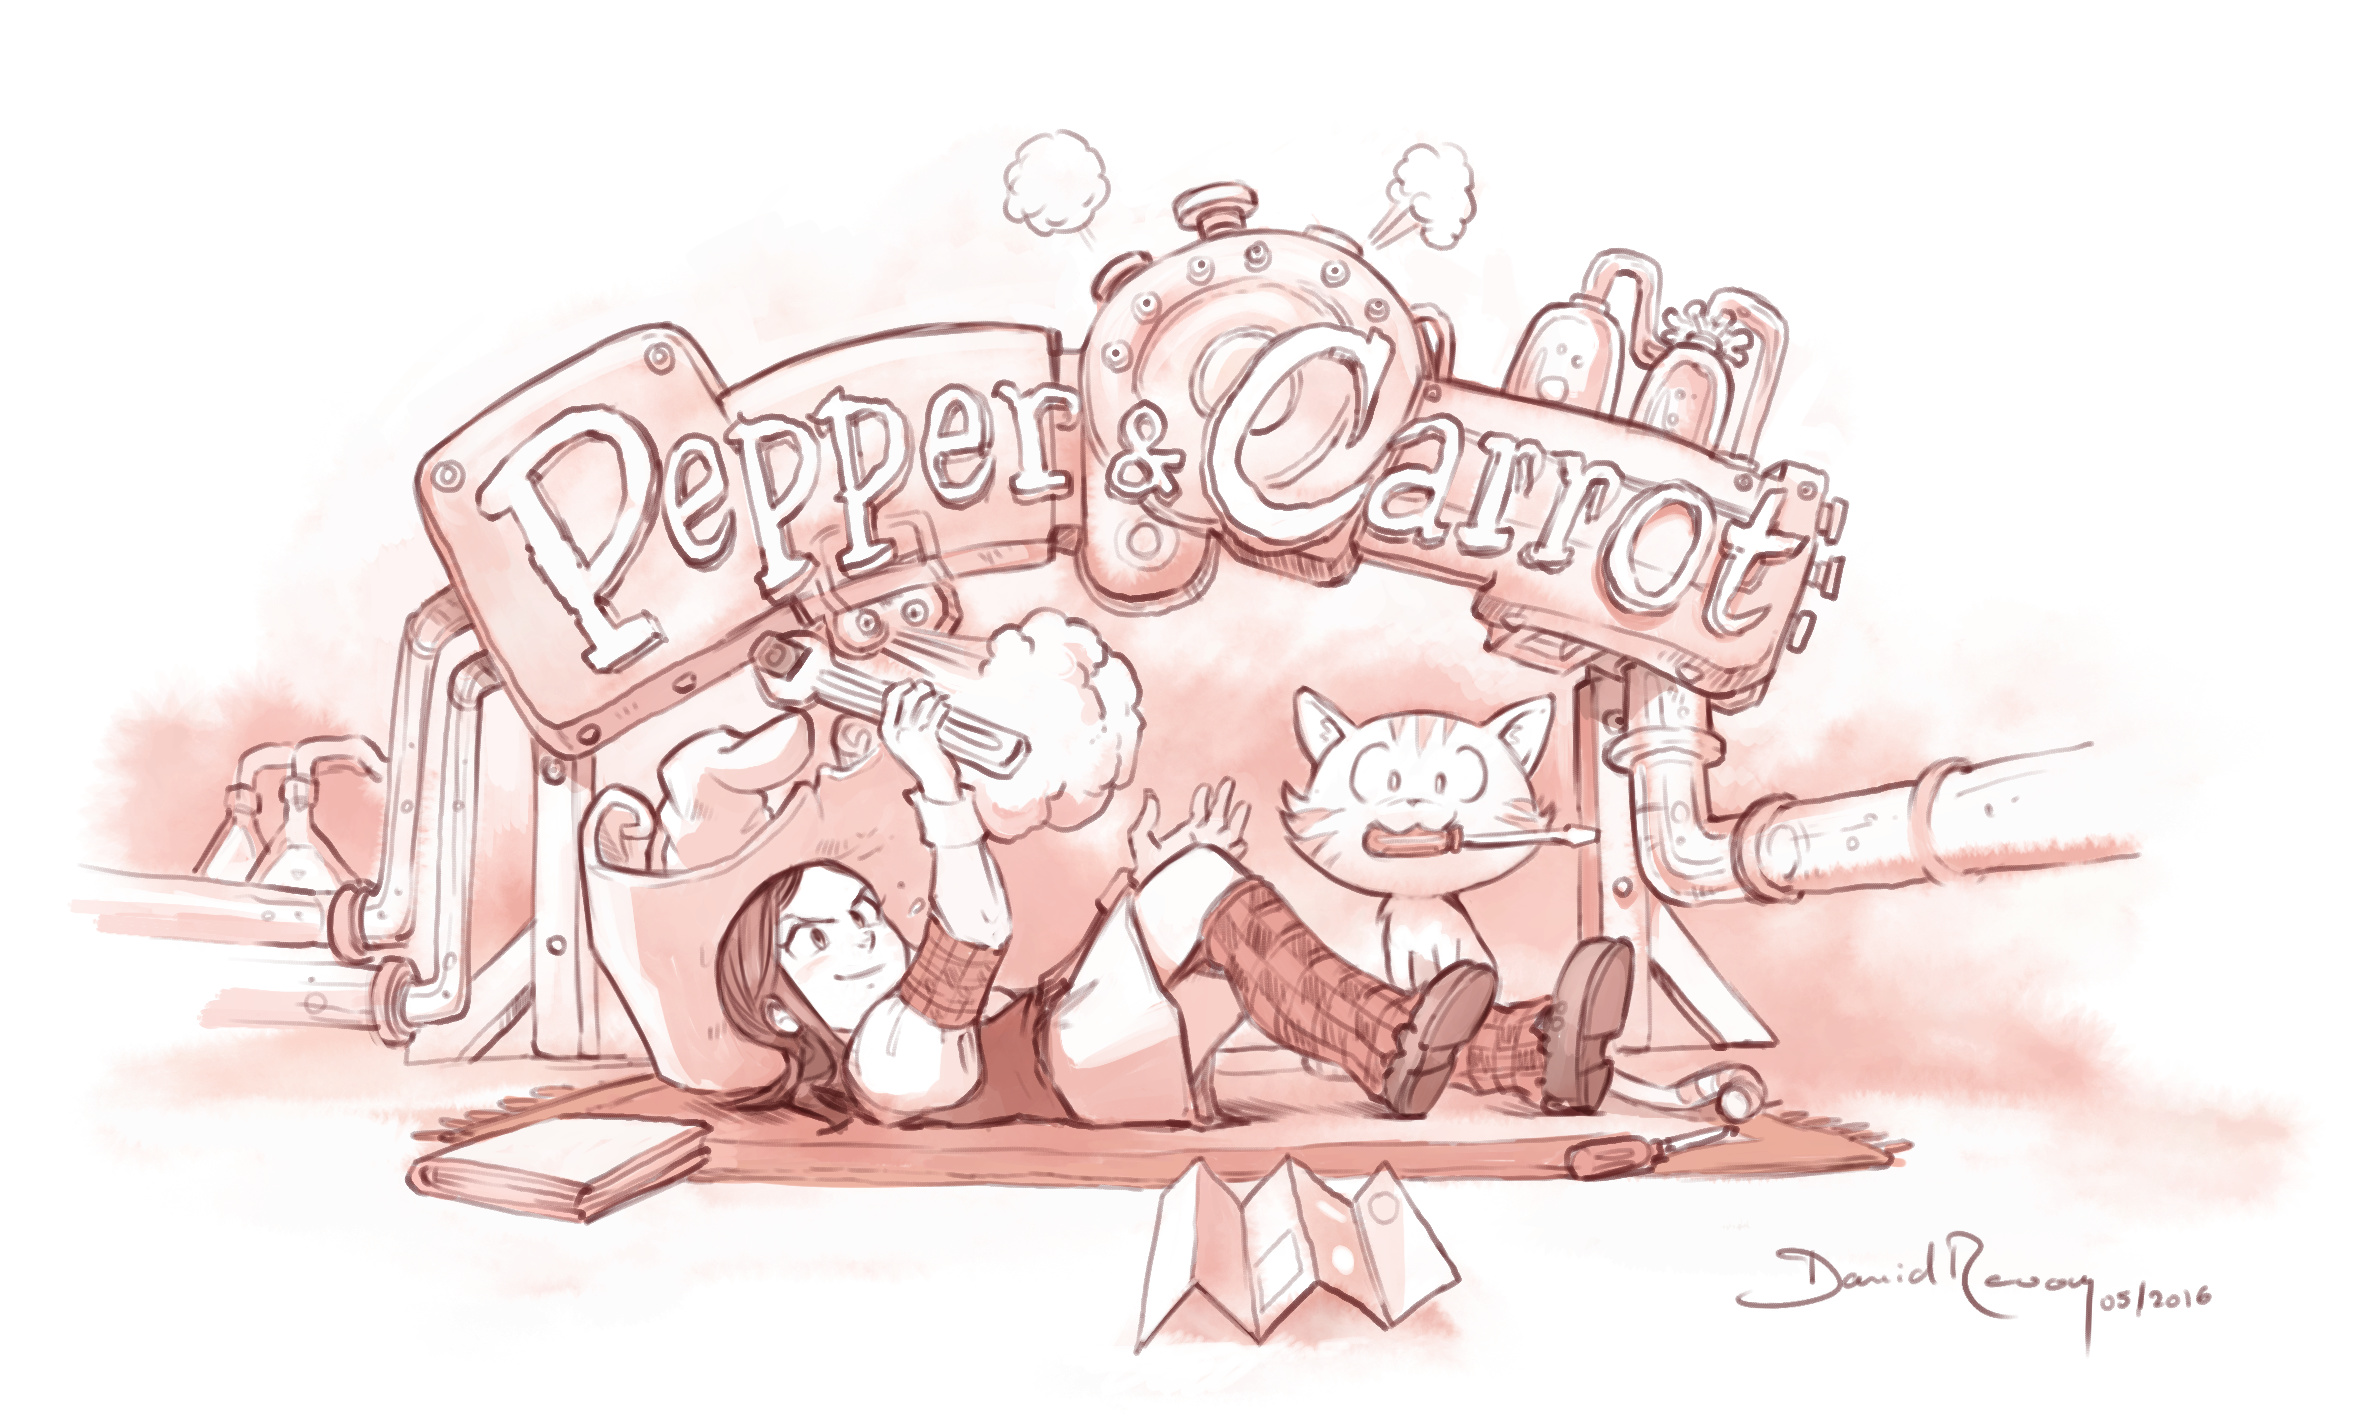 illustration: picture of Pepper and Carrot fixing a big machine